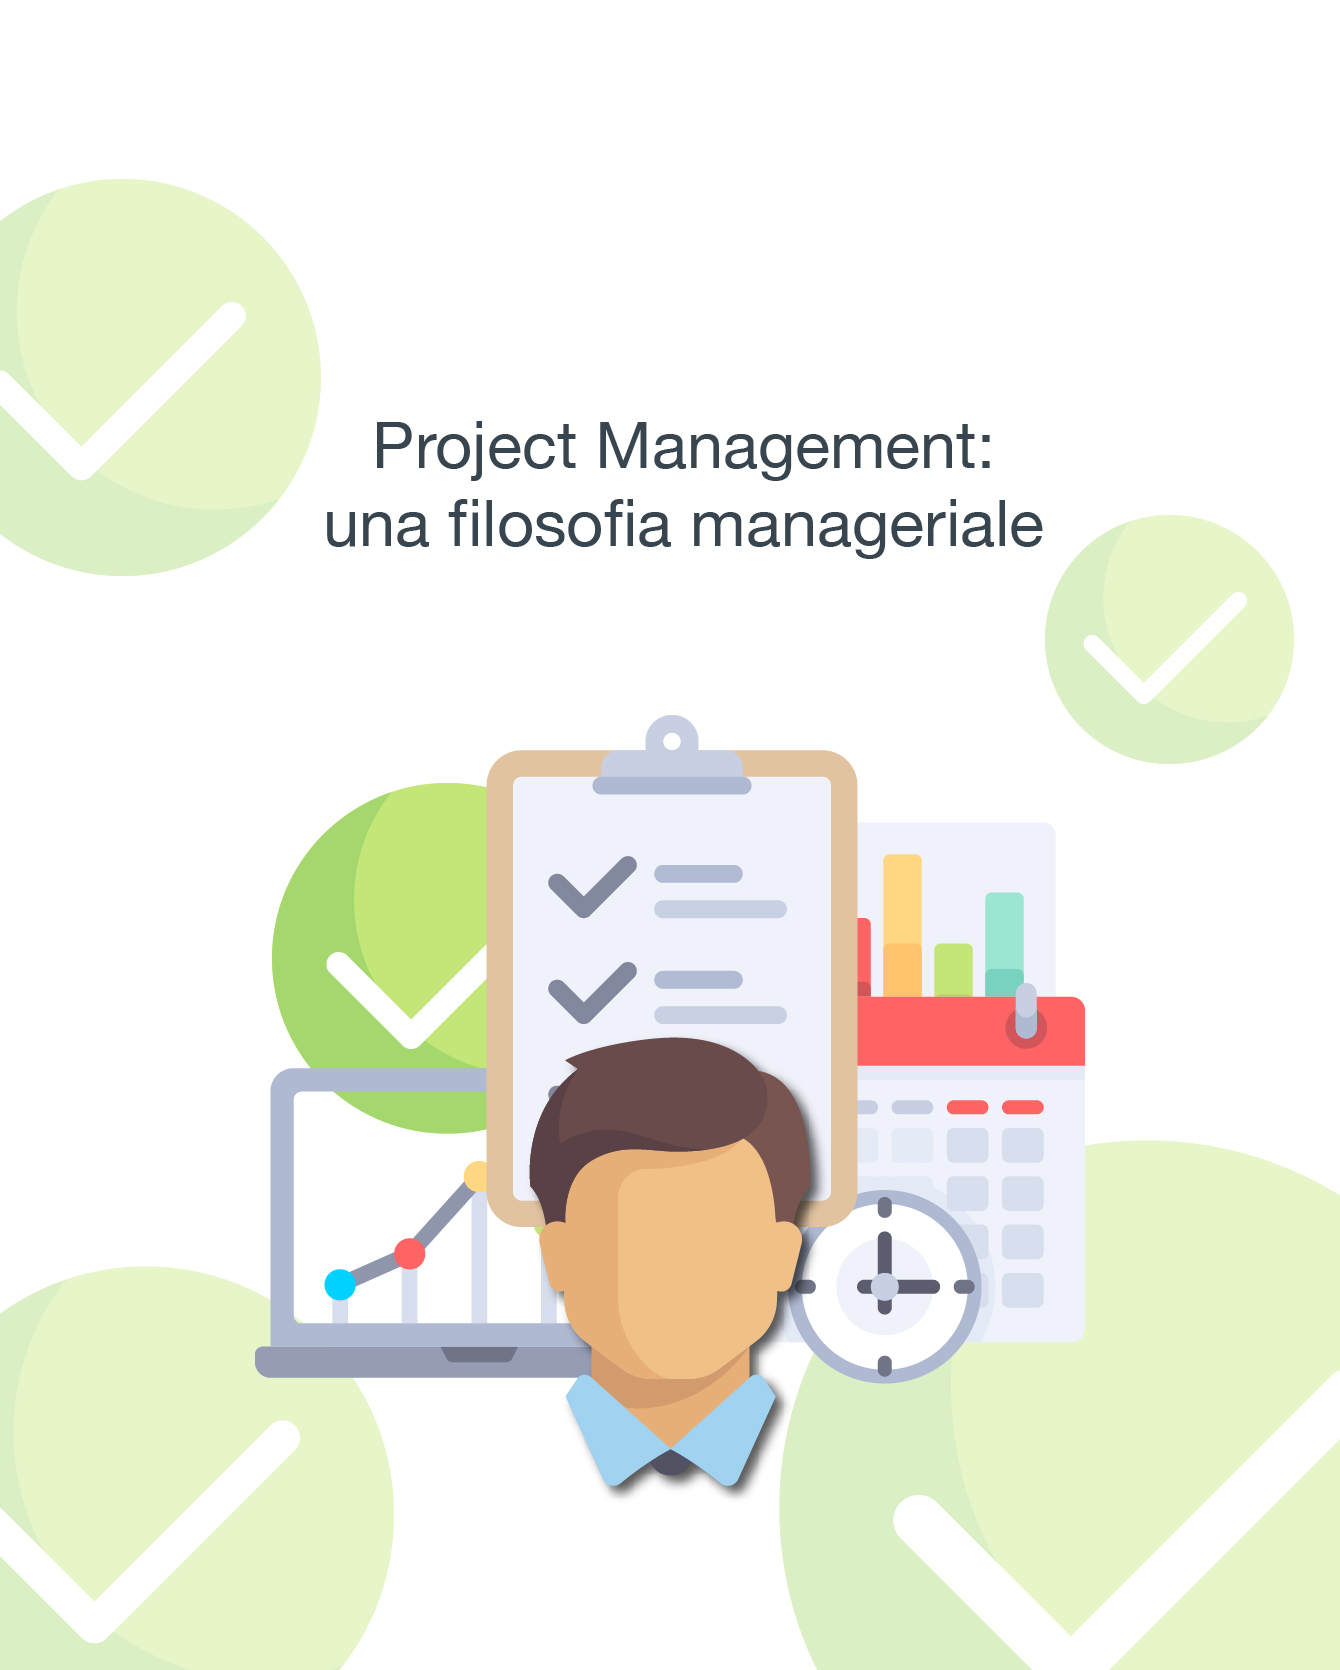 Project Management: una filosofia manageriale